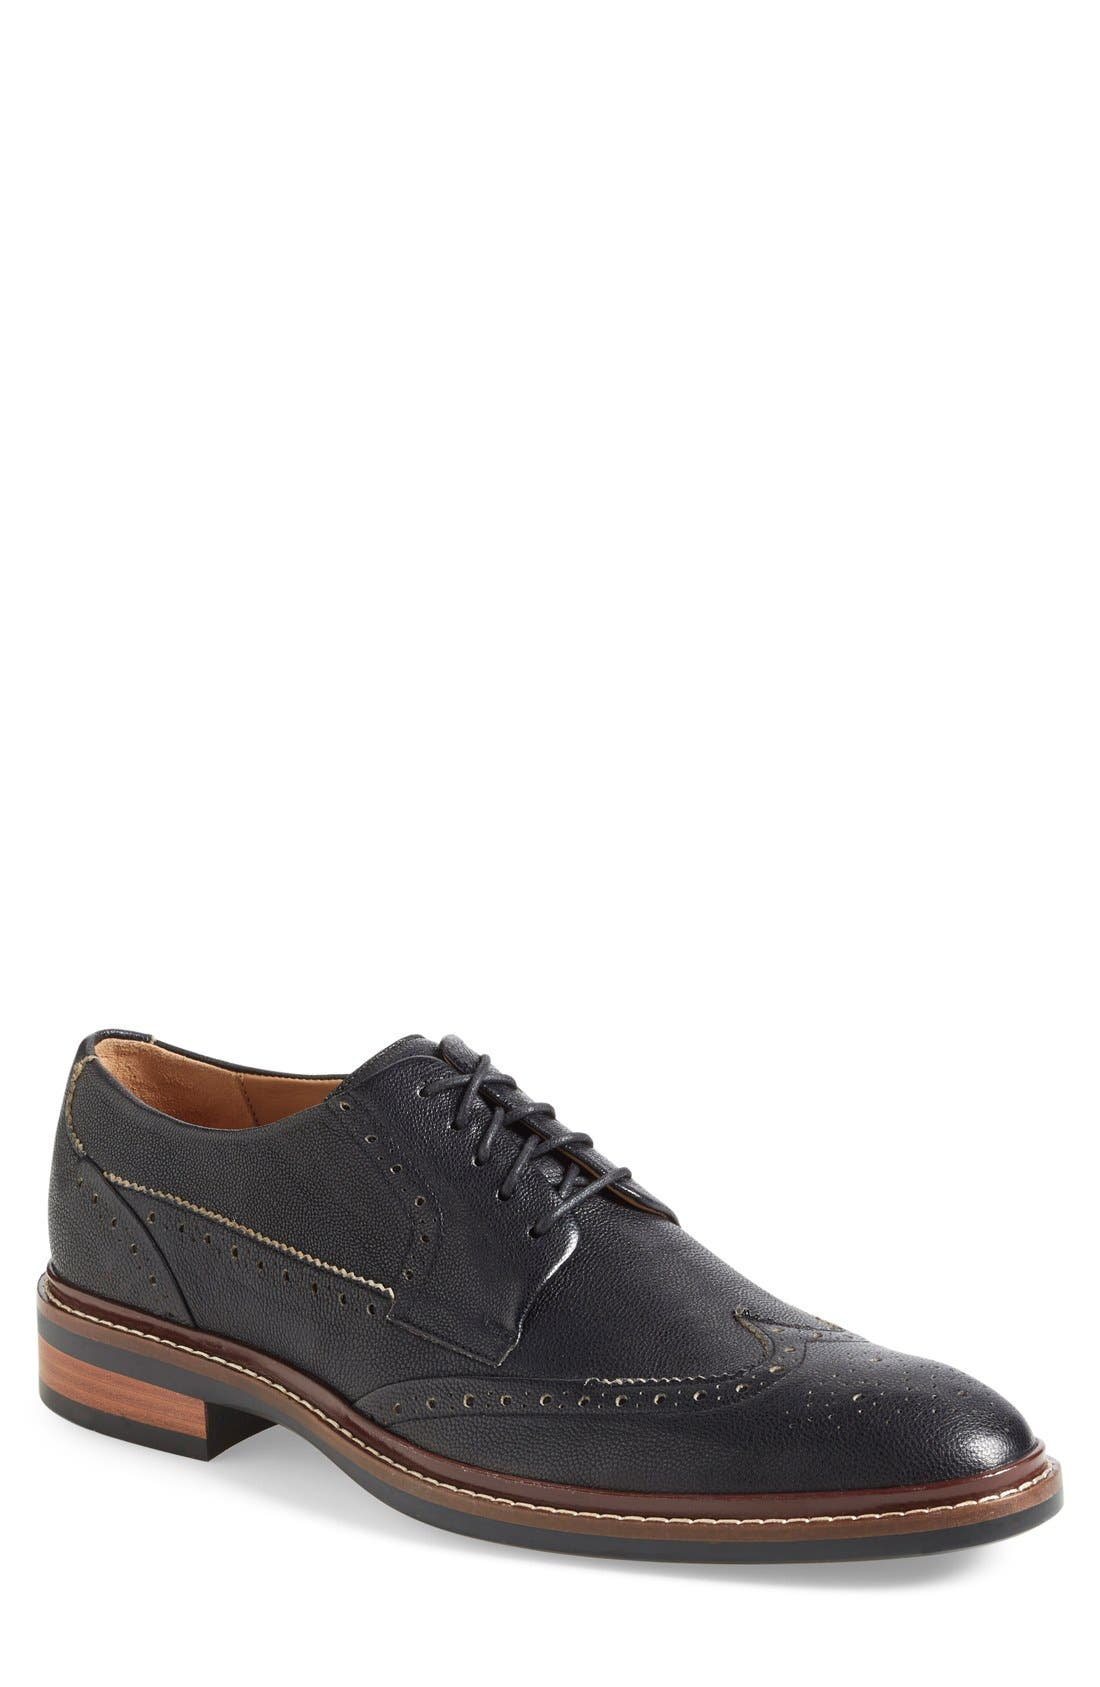 Alternate Image 1 Selected - Cole Haan Warren Welt Wingtip (Men)